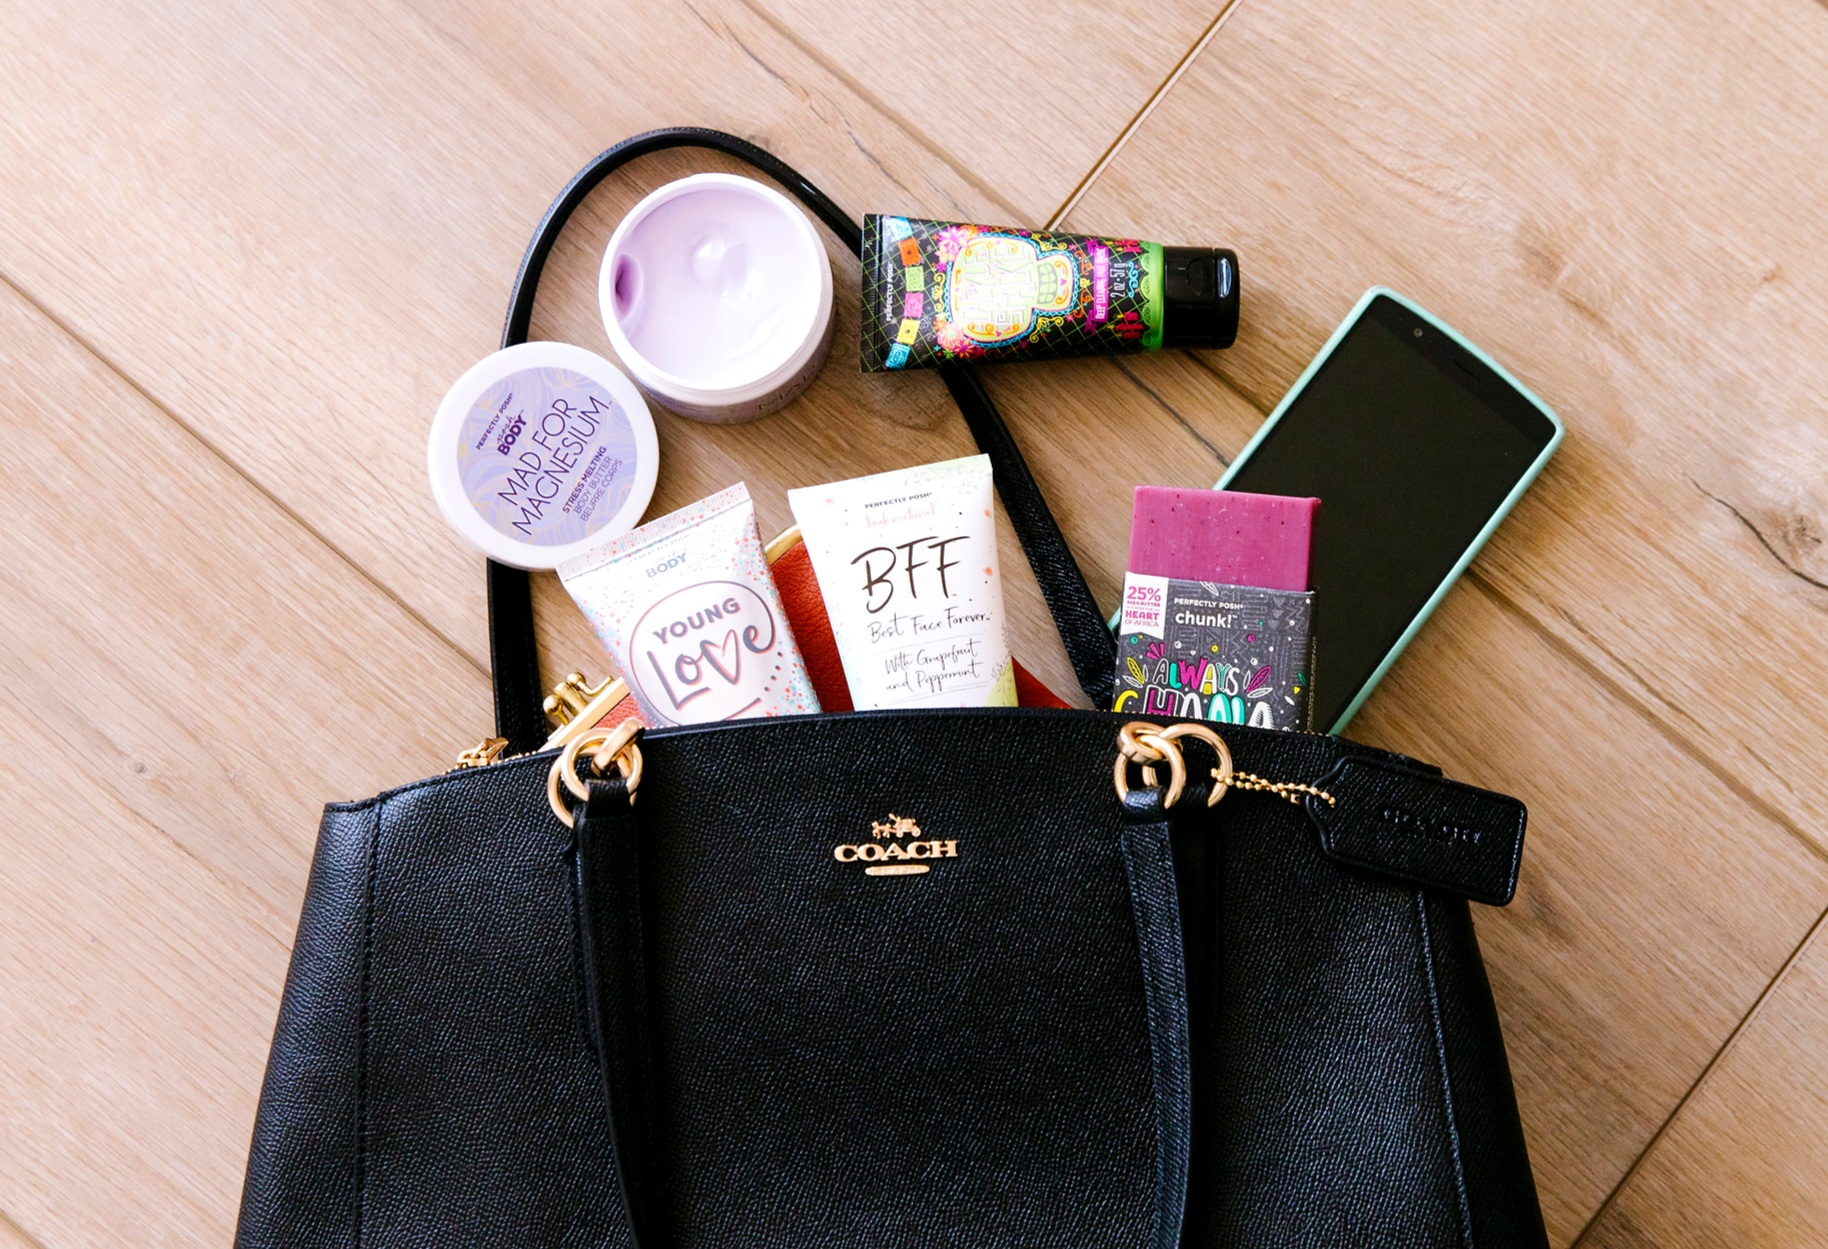 Perfectly Posh Consultant Mary Ludwig's favorite Posh products, Always Ghana Love You Chunk Big Bath Bar, BFF: Best Face Forever Exfoliating Face Wash, Young Love Body Creme, Mad for Magnesium Body Butter, Cackle Spackle Deep Cleaning Face Mask